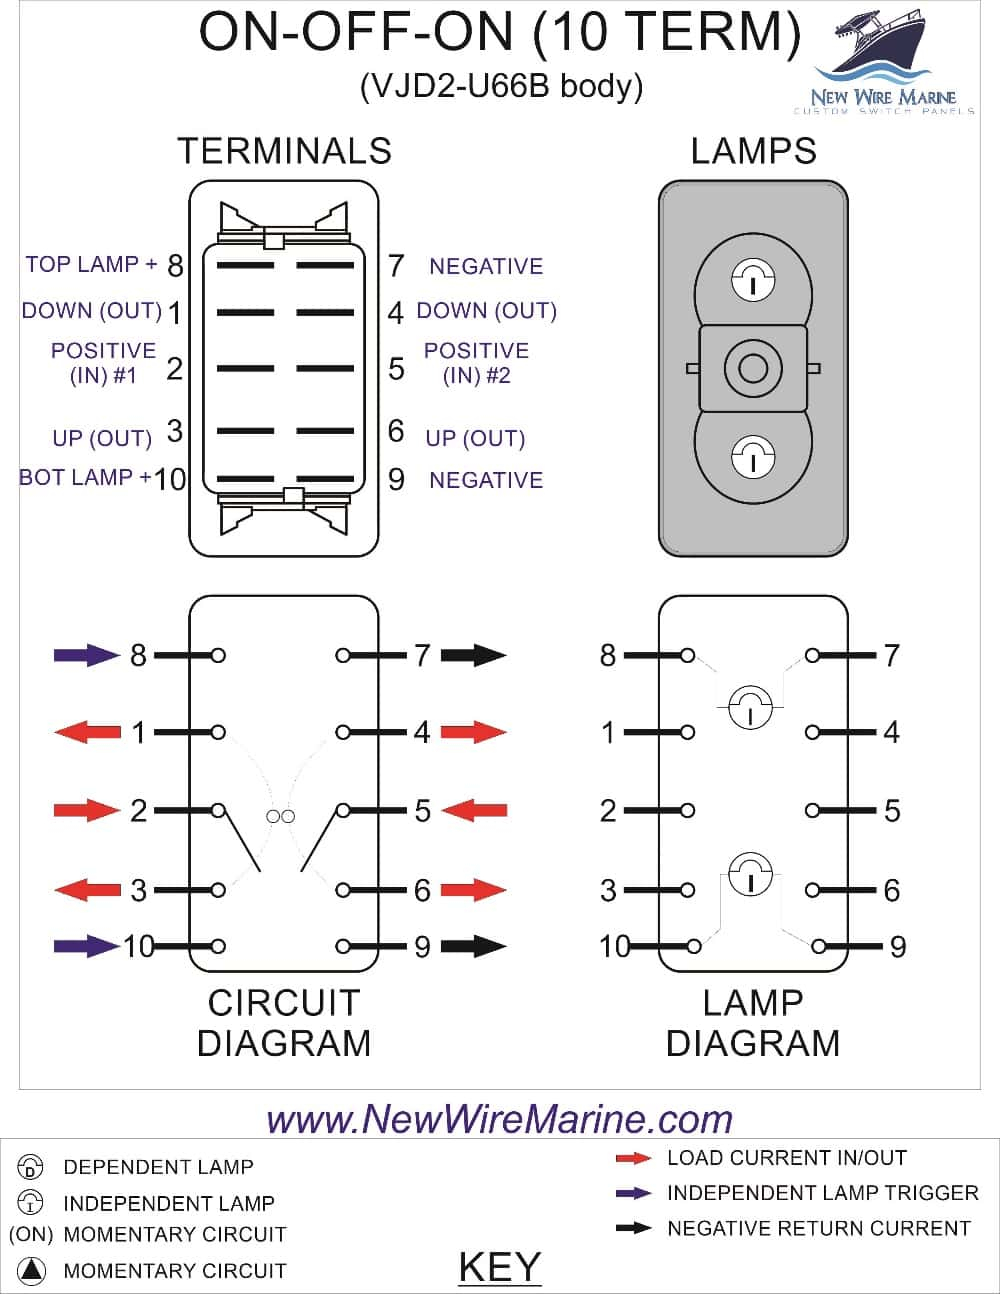 6 pin dpdt switch wiring diagram Download-ON OFF Backlit Rocker Switch Blue LED New Wire Marine And Carling 10 17-p